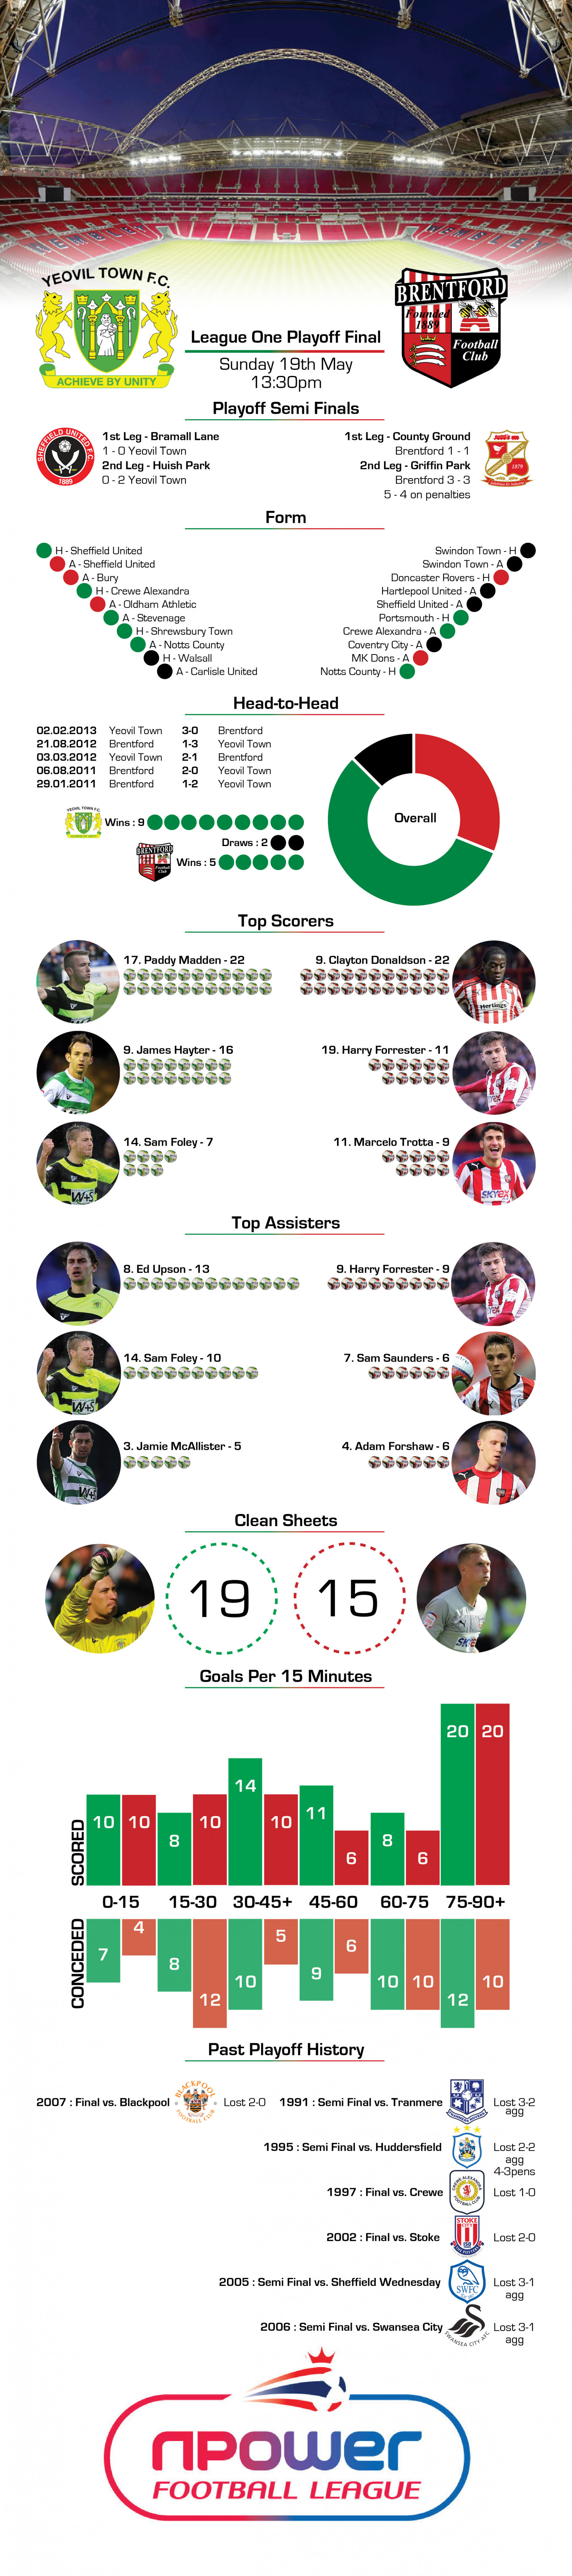 League One Playoff Final Preview Infographic